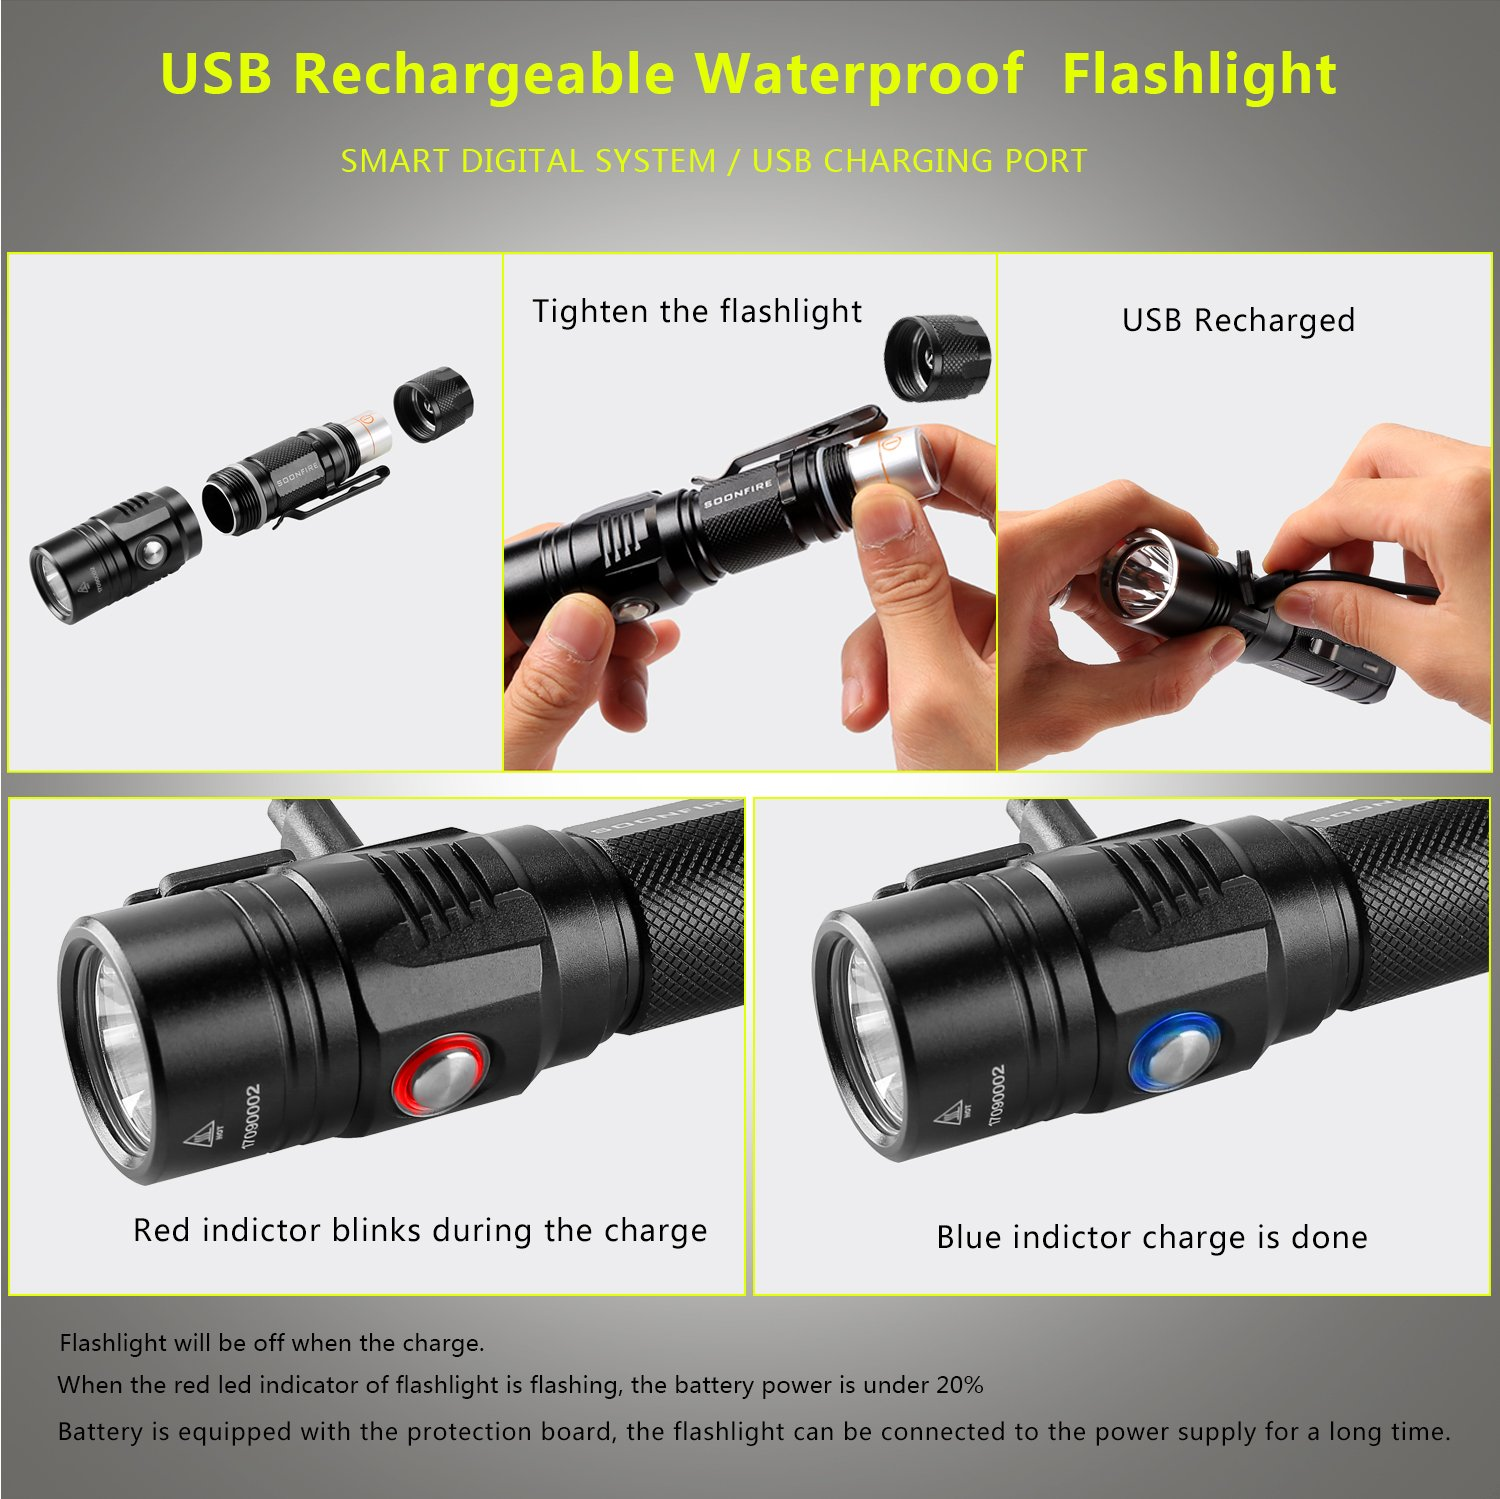 Cree XP-L LED Rechargeable Flashlight,Soonfire E07 USB Waterproof 1000 Lumen Compact EDC Flashlight with type 18650 3400mAh rechargeable Li-ion battery by soonfire (Image #6)